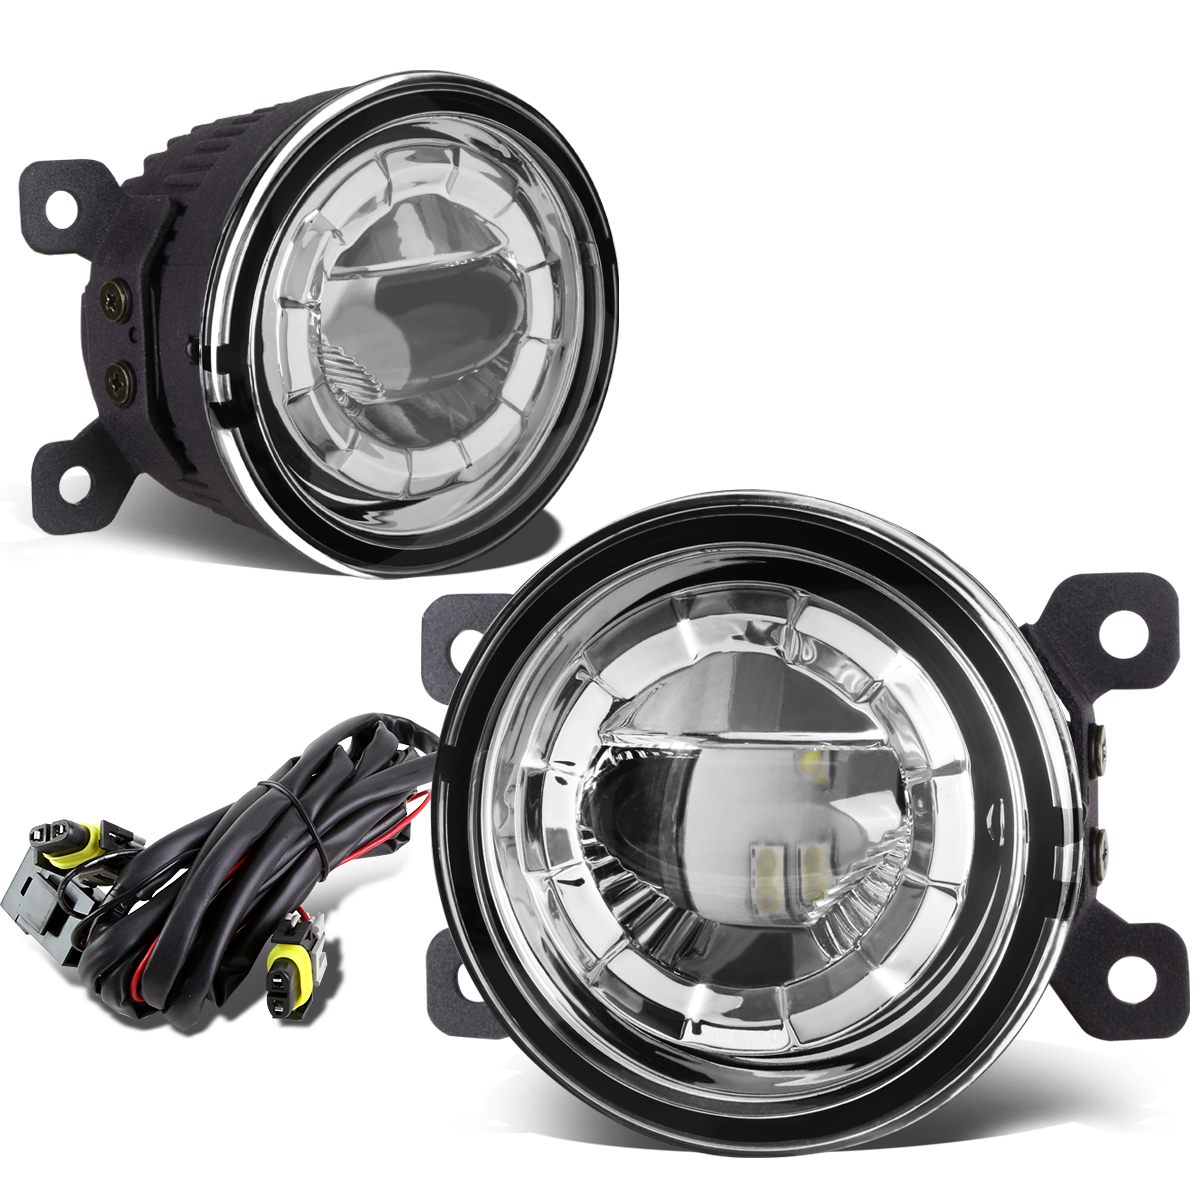 """For 08-15 Pair of 3.5"""" Round 2 x 5W LED Projector Bumper Driving Fog Lights + Wiring (Clear Lens) 09 10 11 12 13 14"""